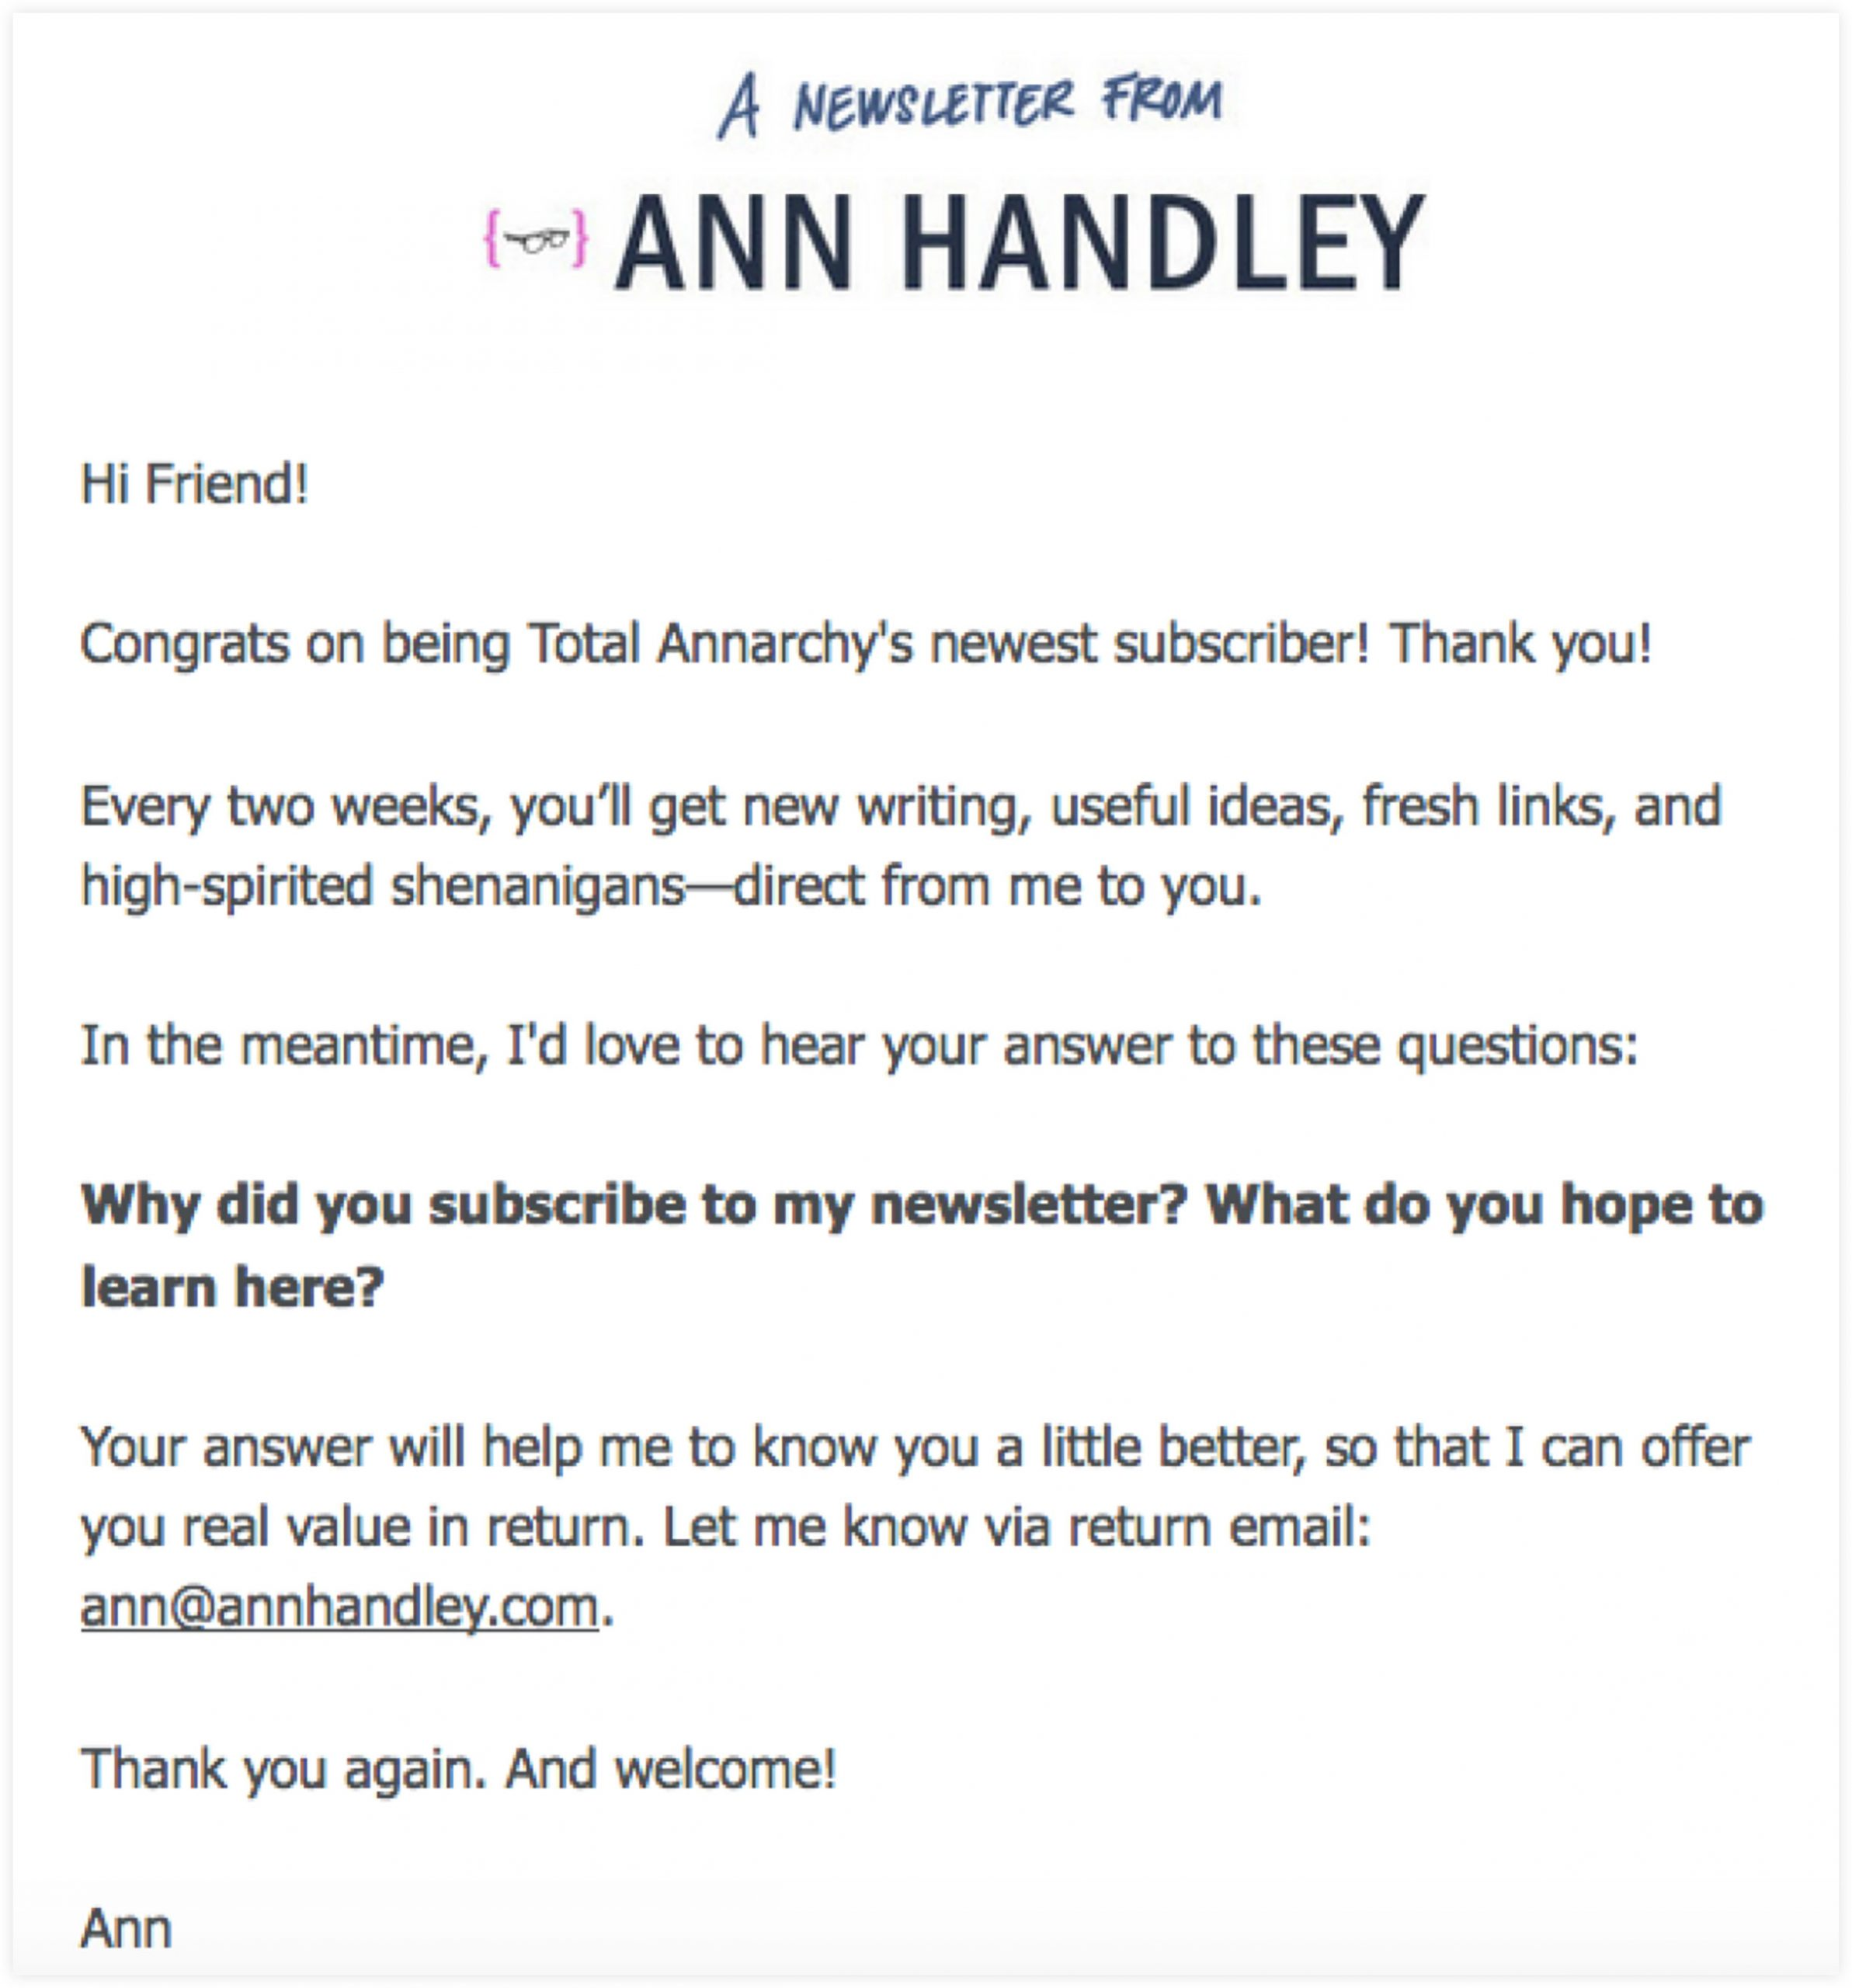 Survey Email Template | ClickFunnels